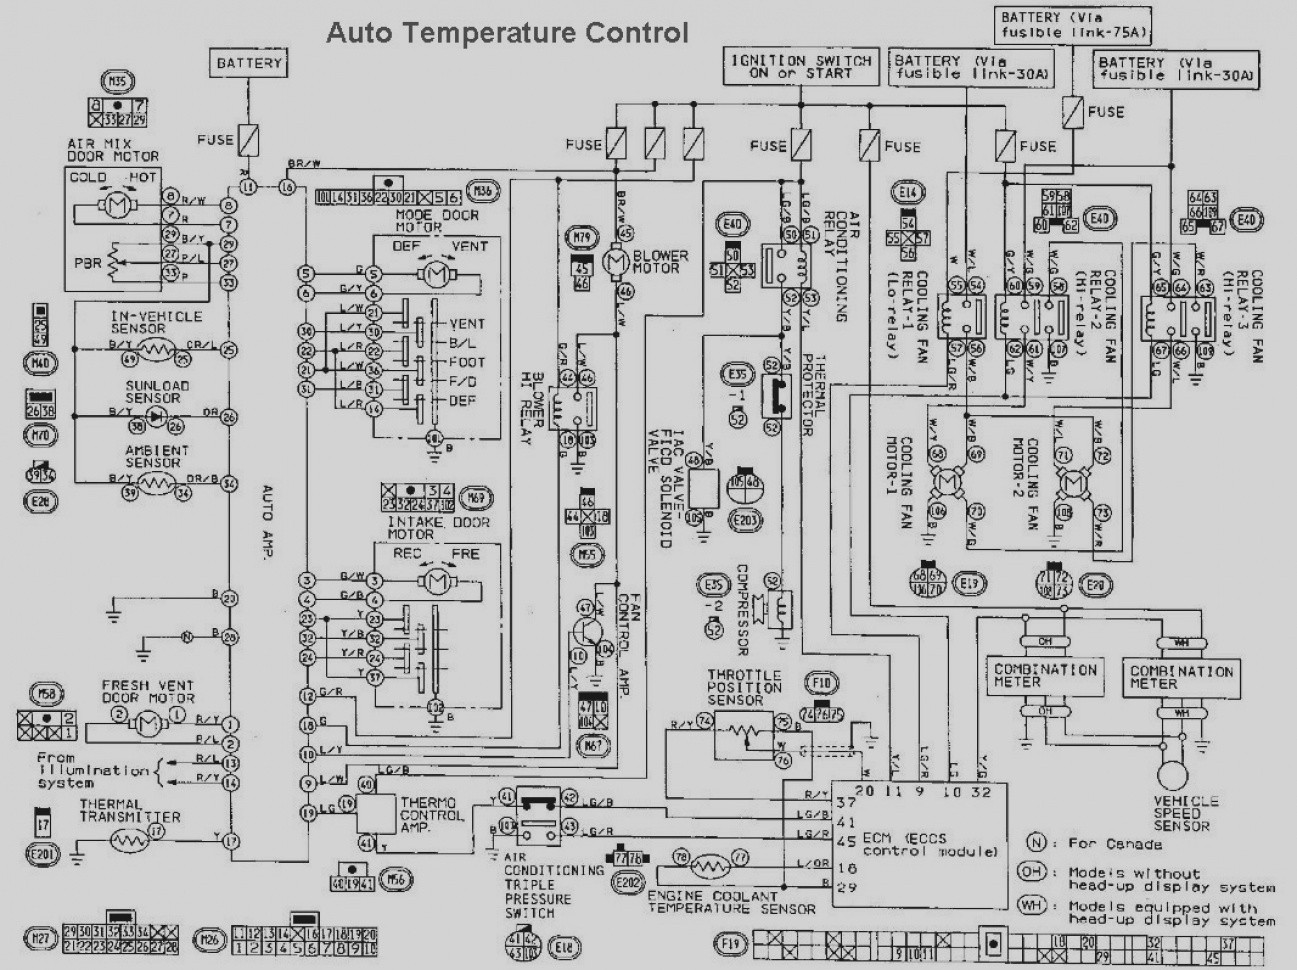 Wiring Diagram Nissan Serena 1991 2002 C23 Vanette Car Stereo Besides 2 Speed Electric Fan U0026 Sound Noise Insulation 28185